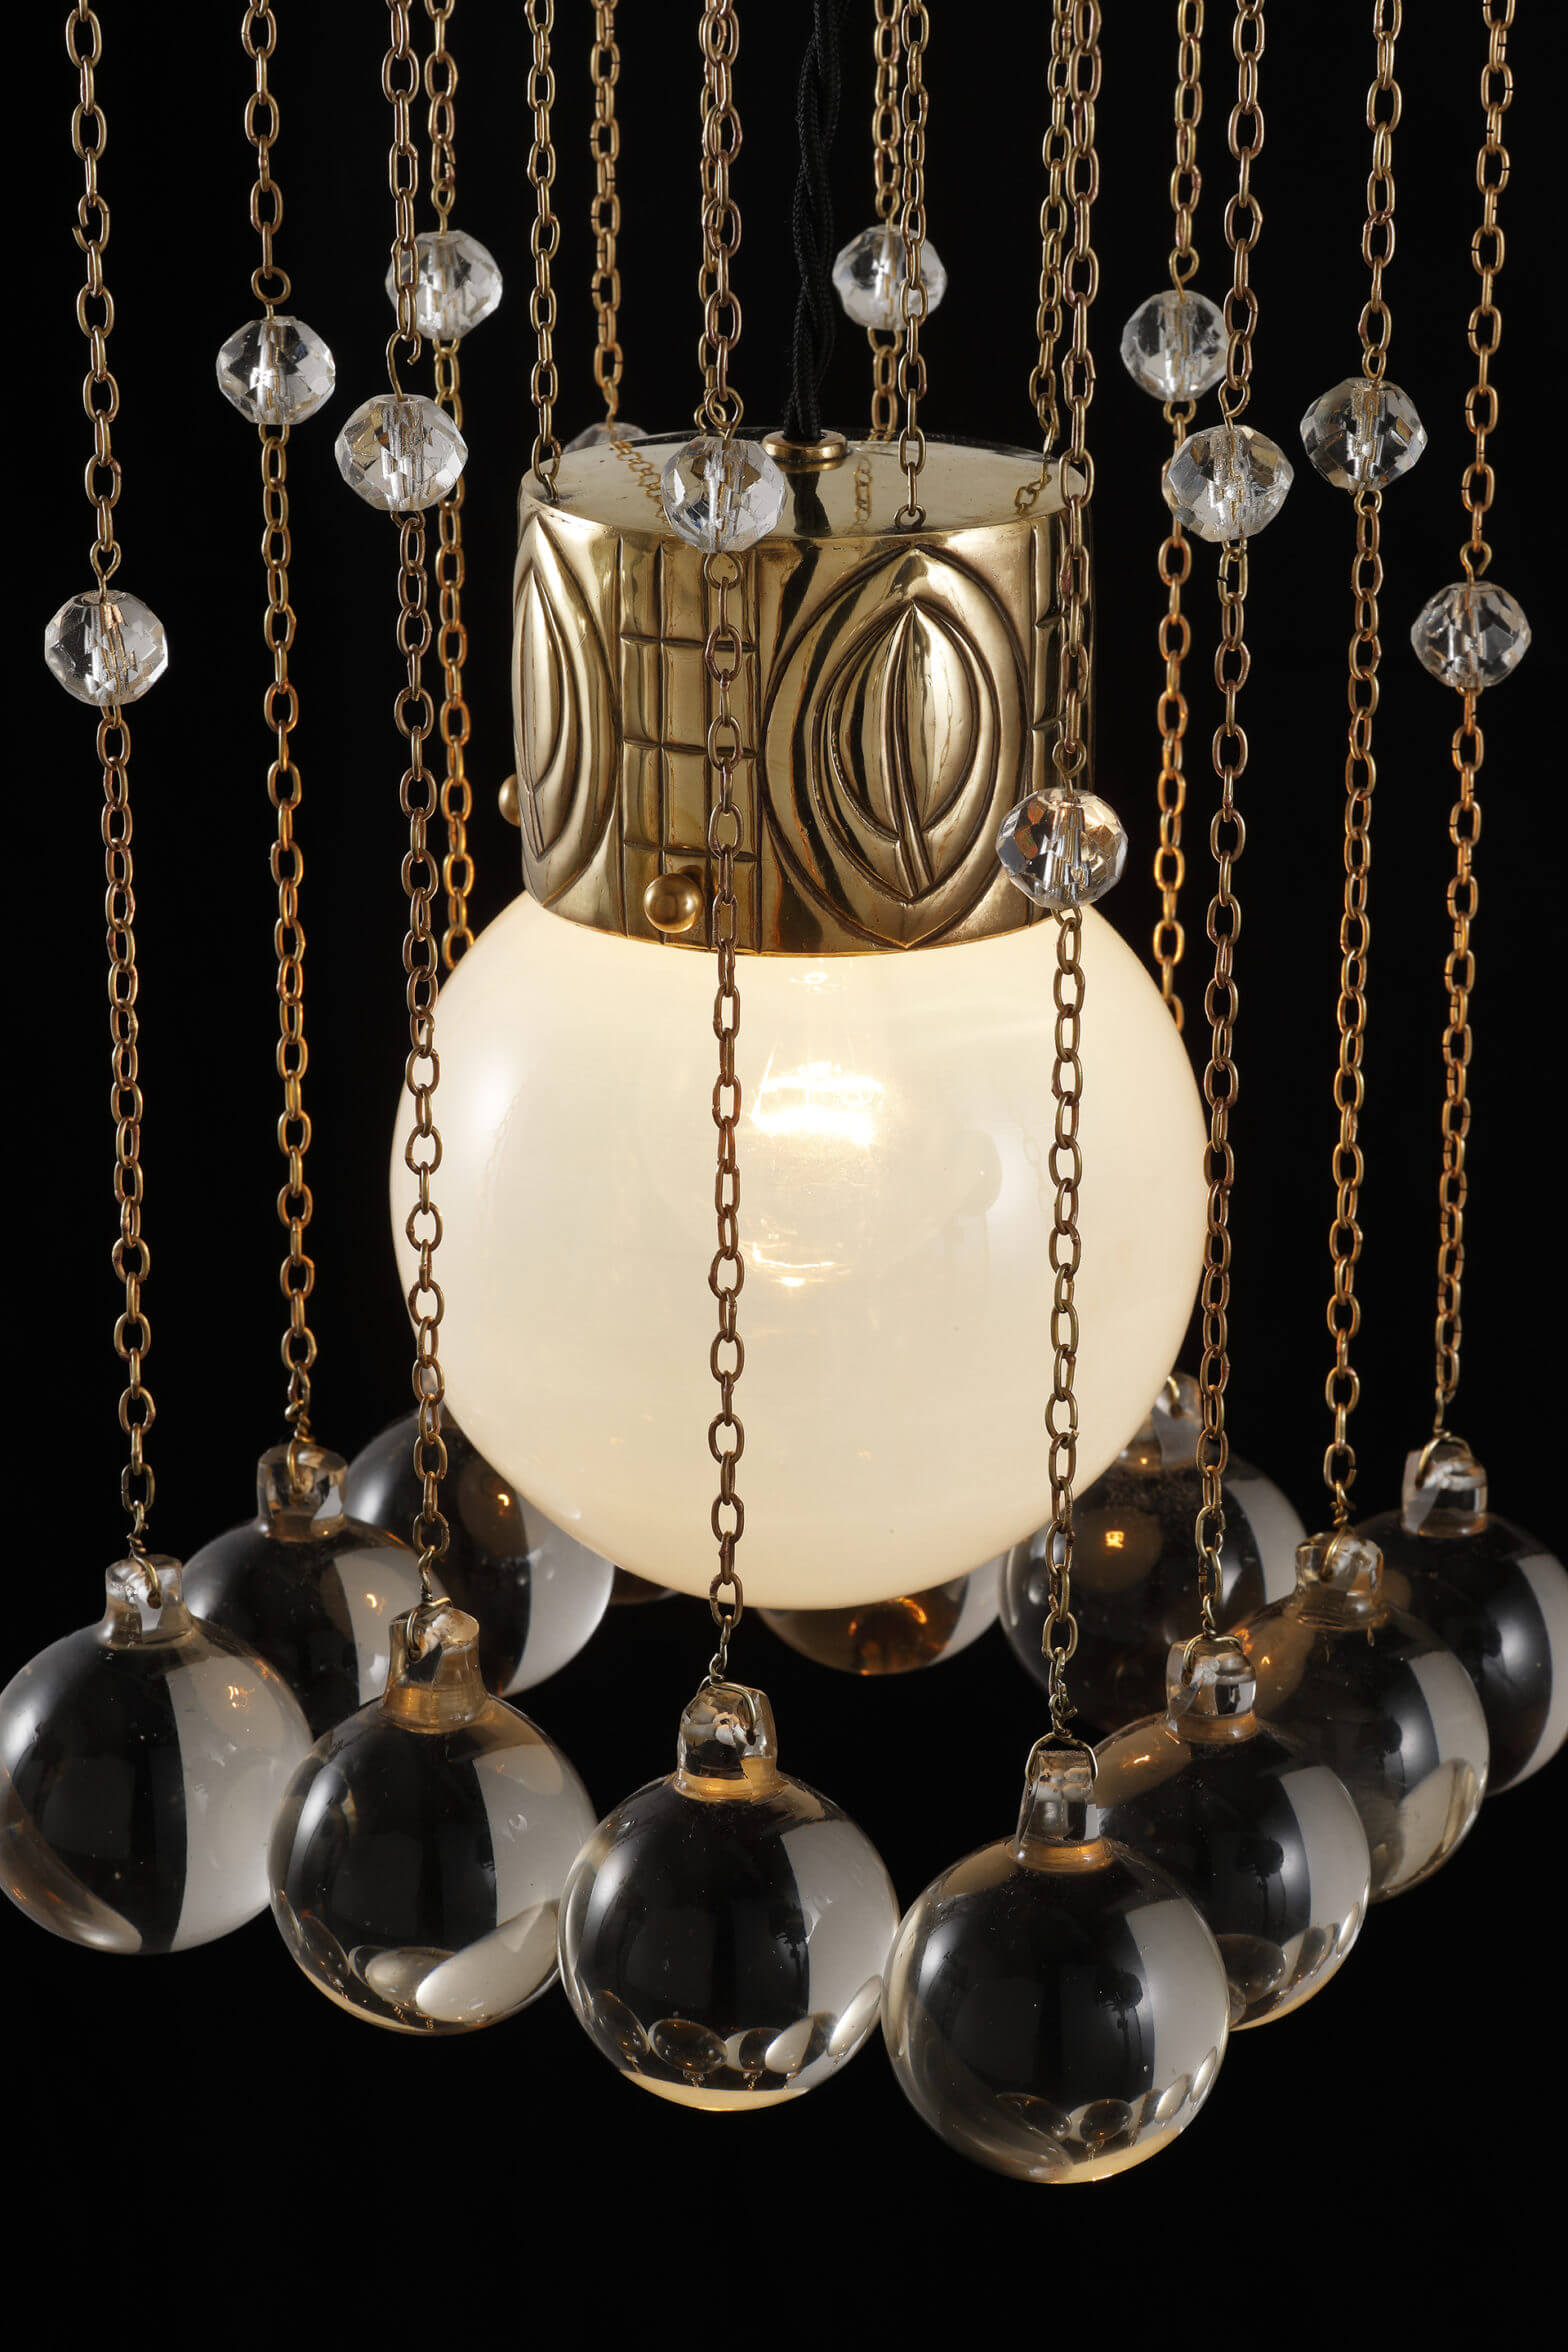 Josef Hoffmann - Hanging lamp model n° 997, prototype for the Palais Stoclet